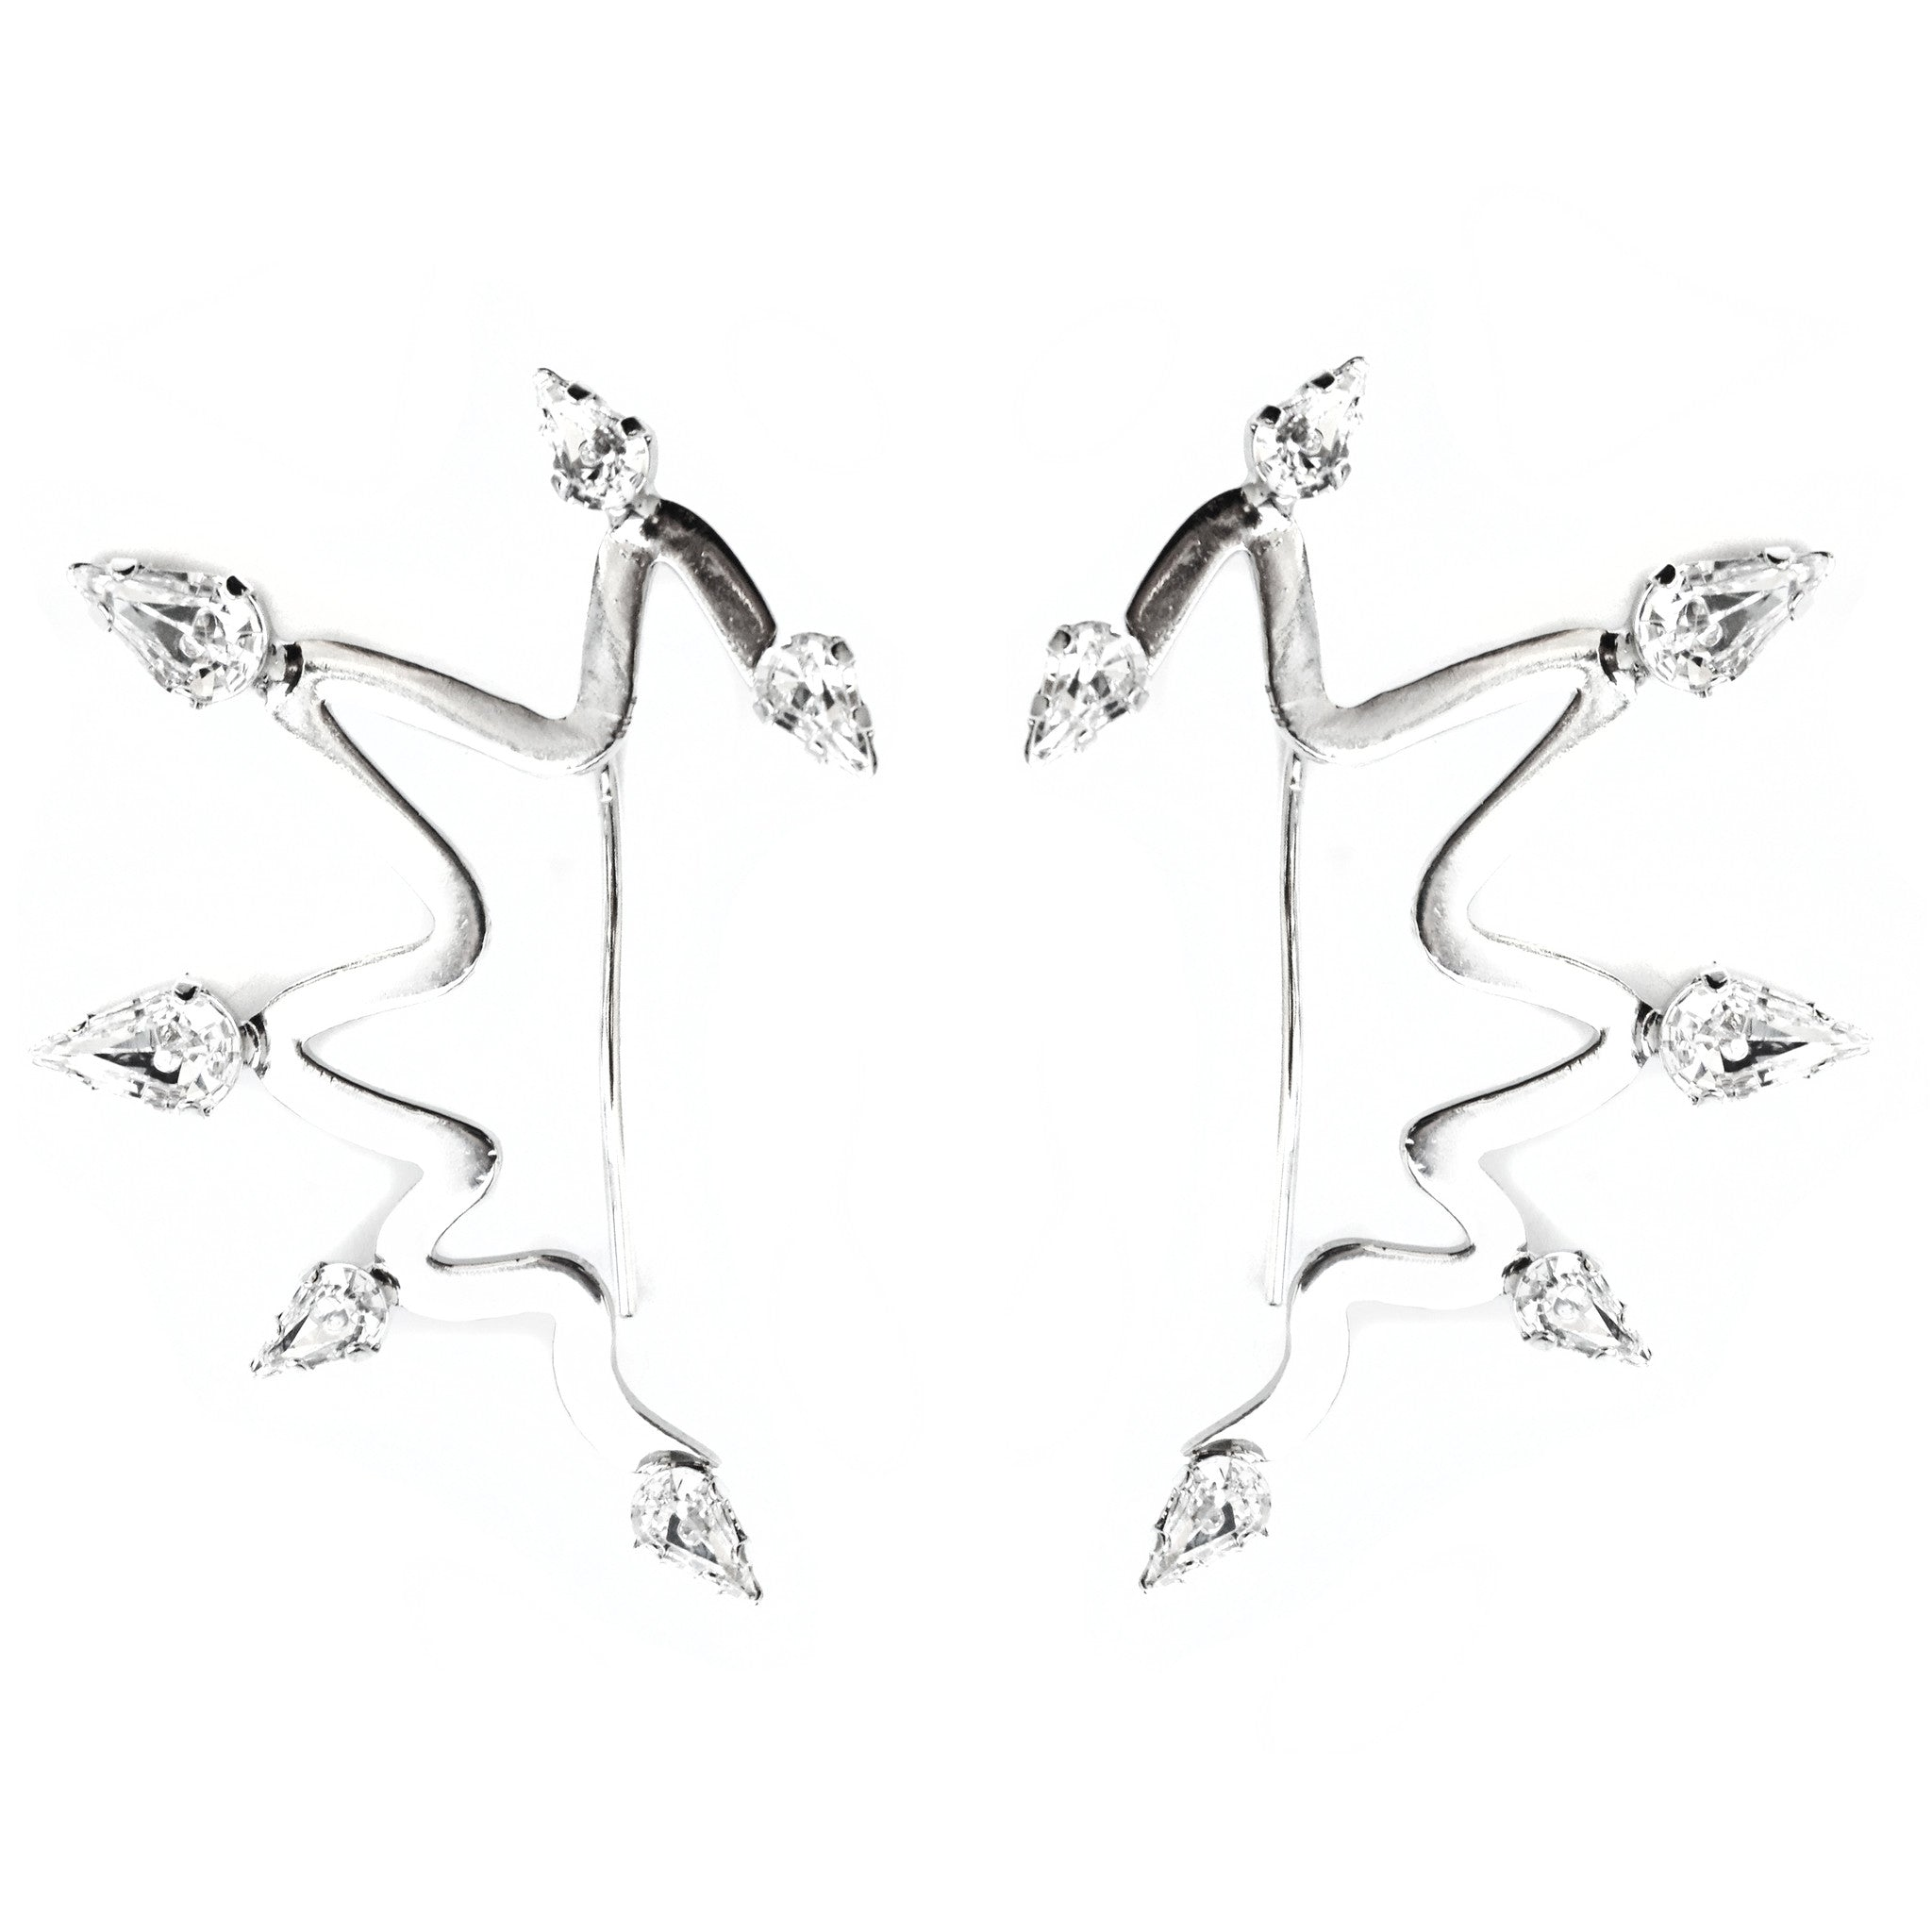 CAROLYN COLBY - SILVER CRYSTAL ZIG-ZAG SPIKE EARRINGS